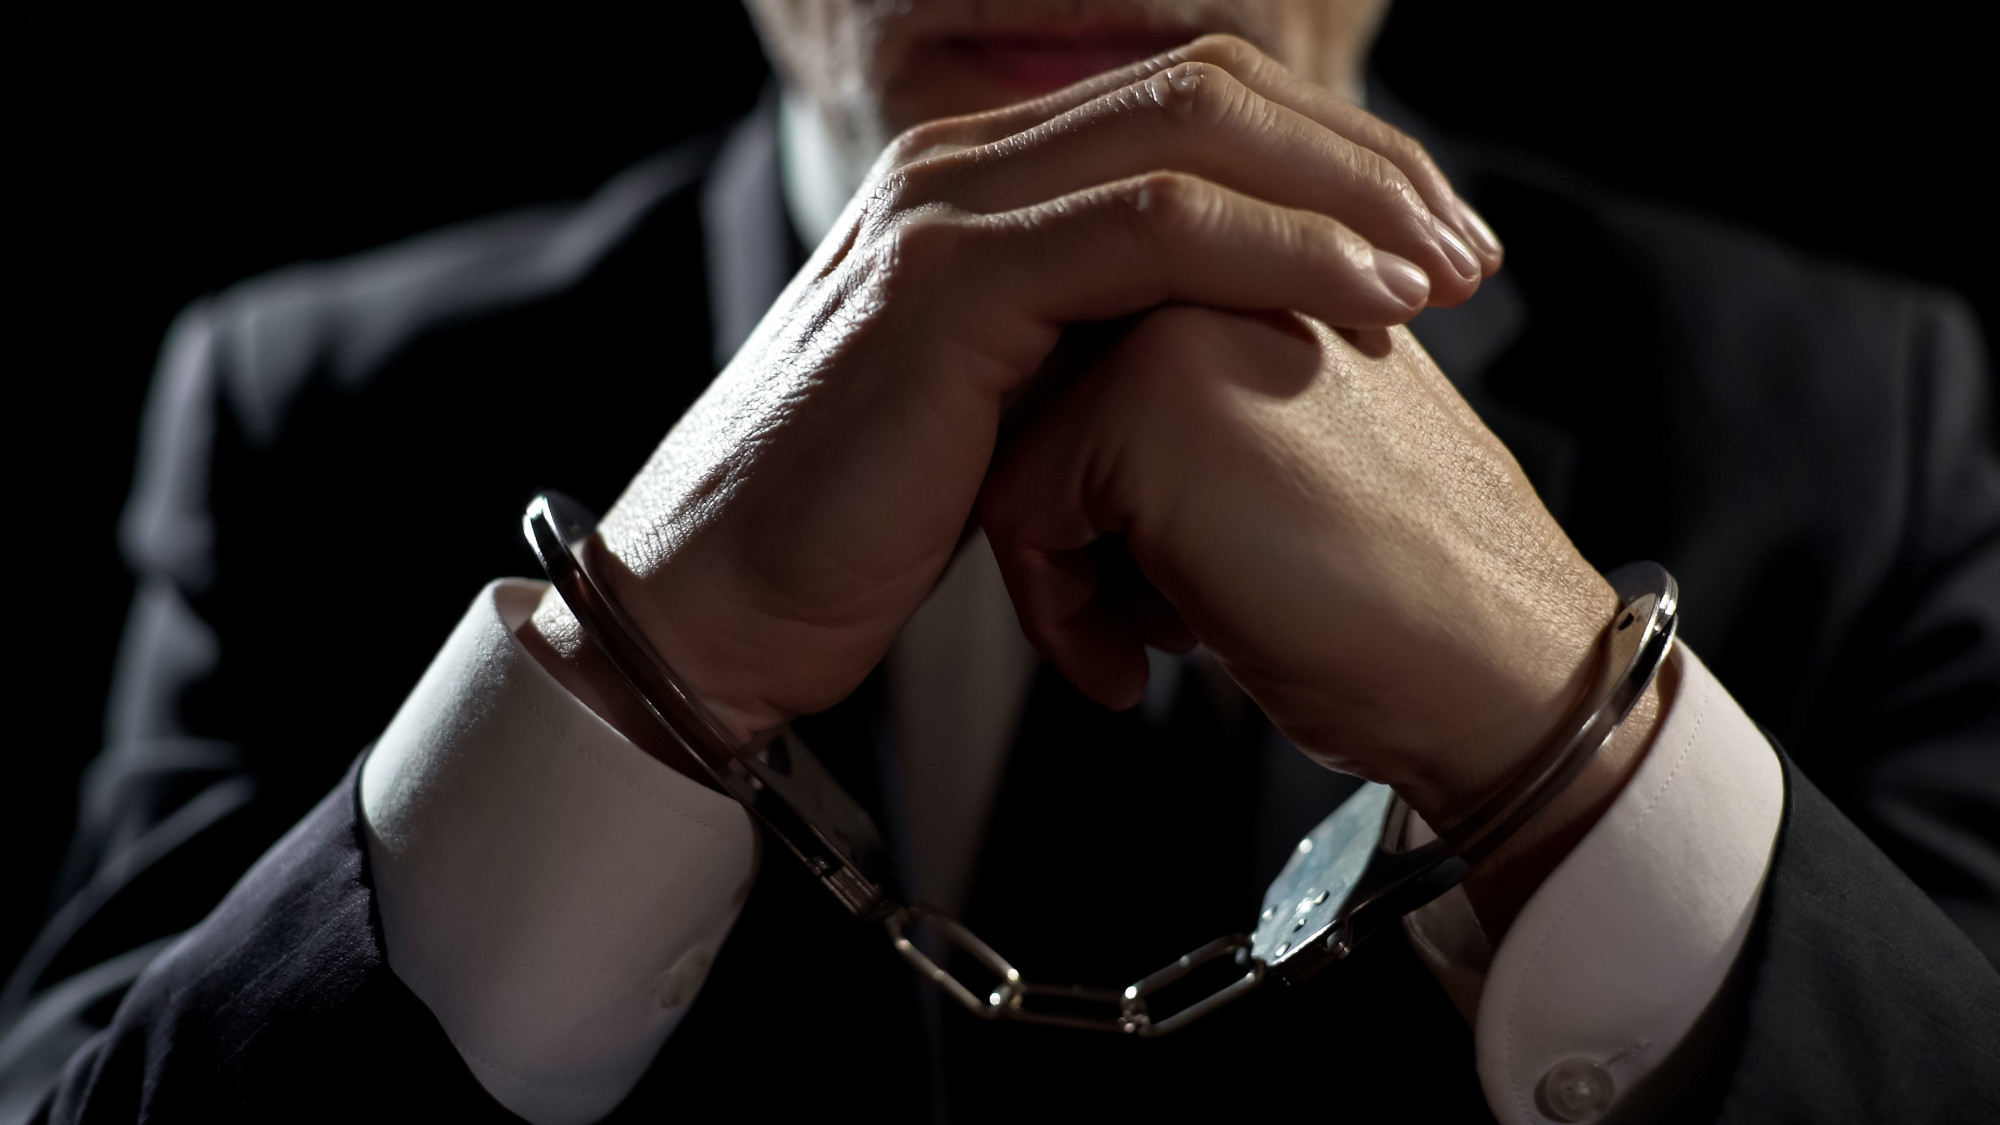 What Does It Mean to Be Convicted of a Crime? A Crash Course in Basic Criminal Justice